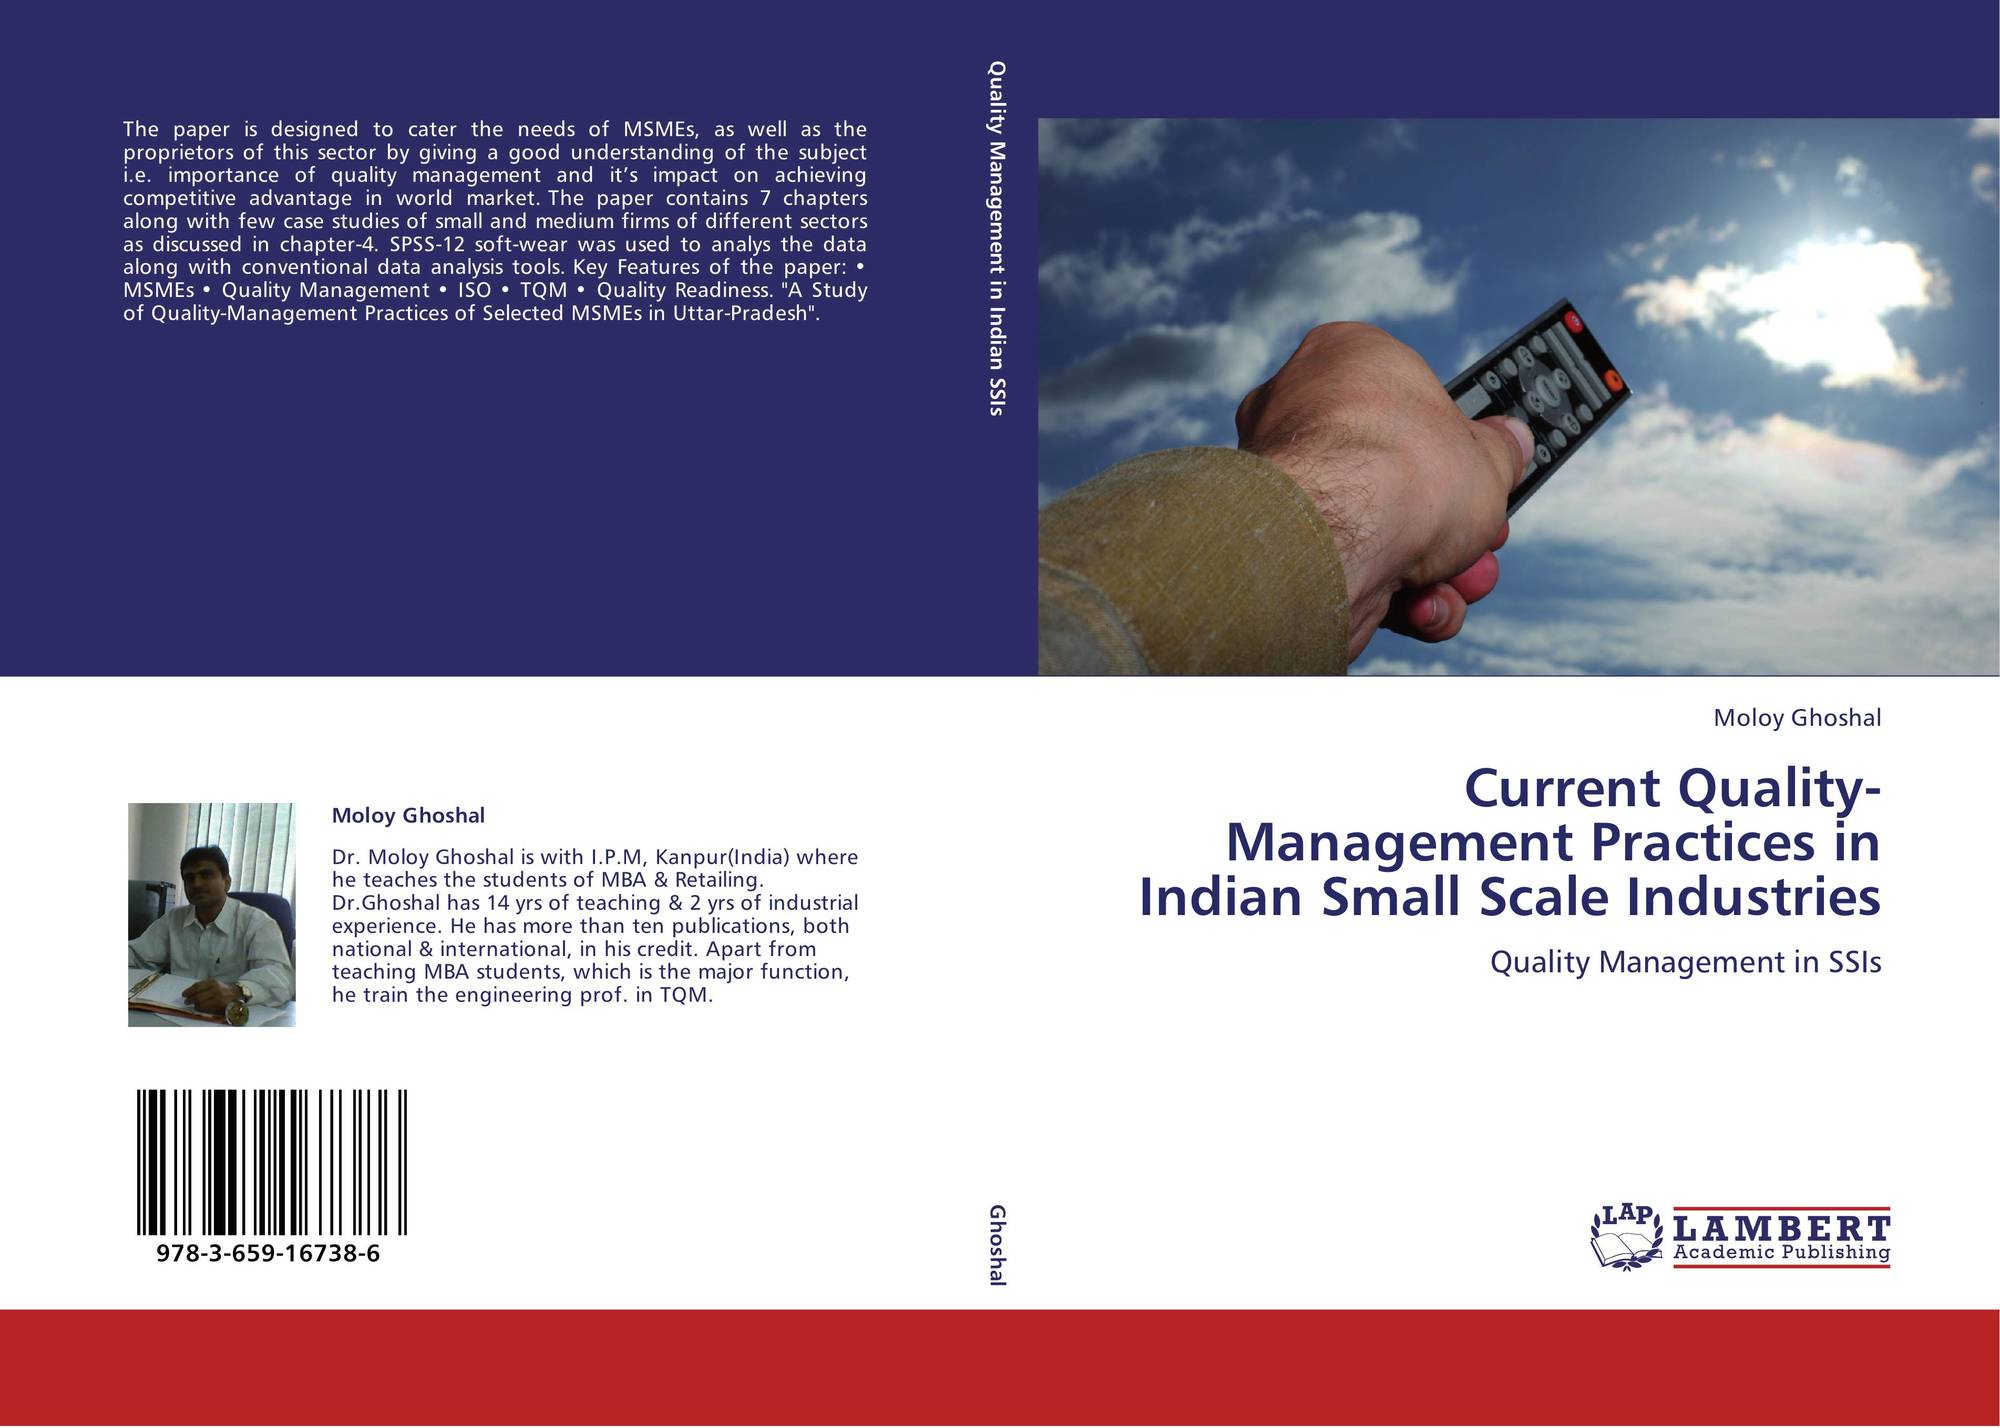 management of small scale industries About this item: anmol publications pvt ltd, 2000 hardcover condition: new small scale industry can play an important role in dispersal of national income and reducing unemployment, thereby improving the quality of life of the majority of the population of india.